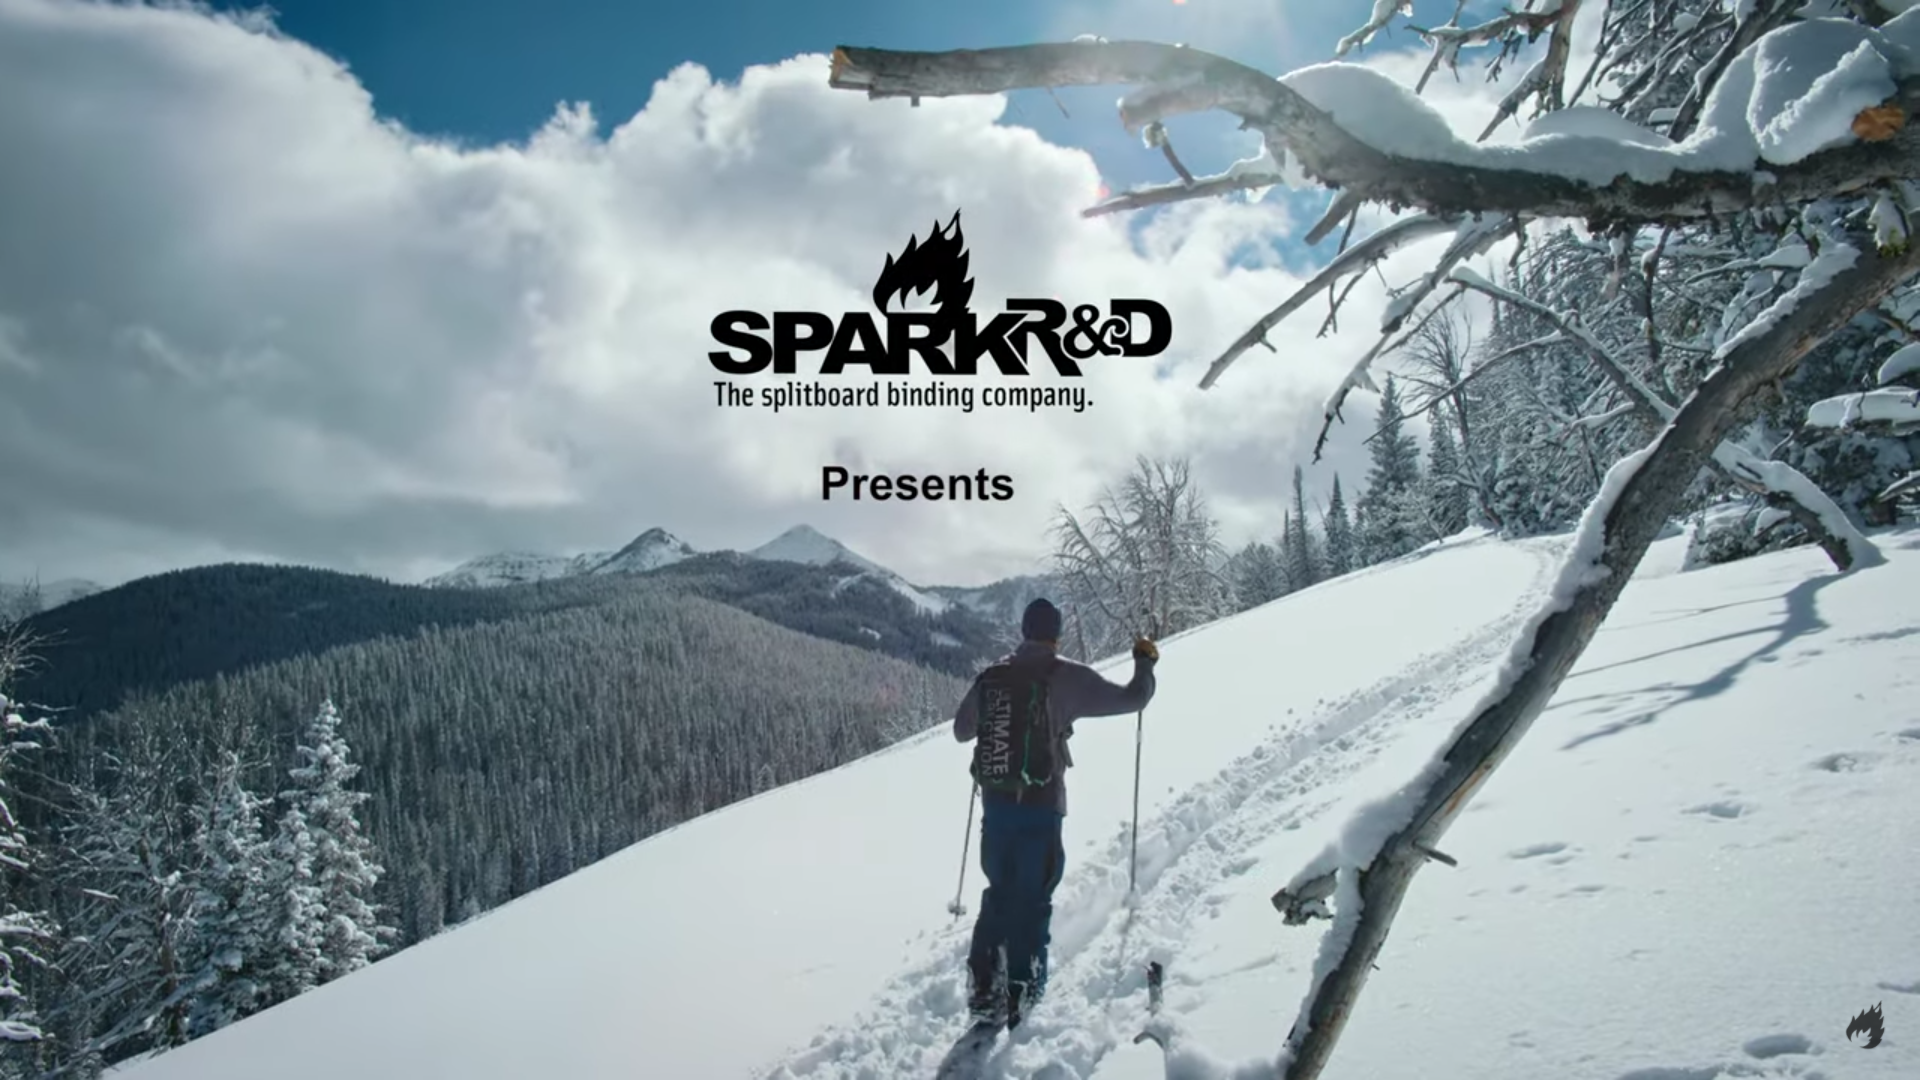 From Day One Trailer from Spark R&D